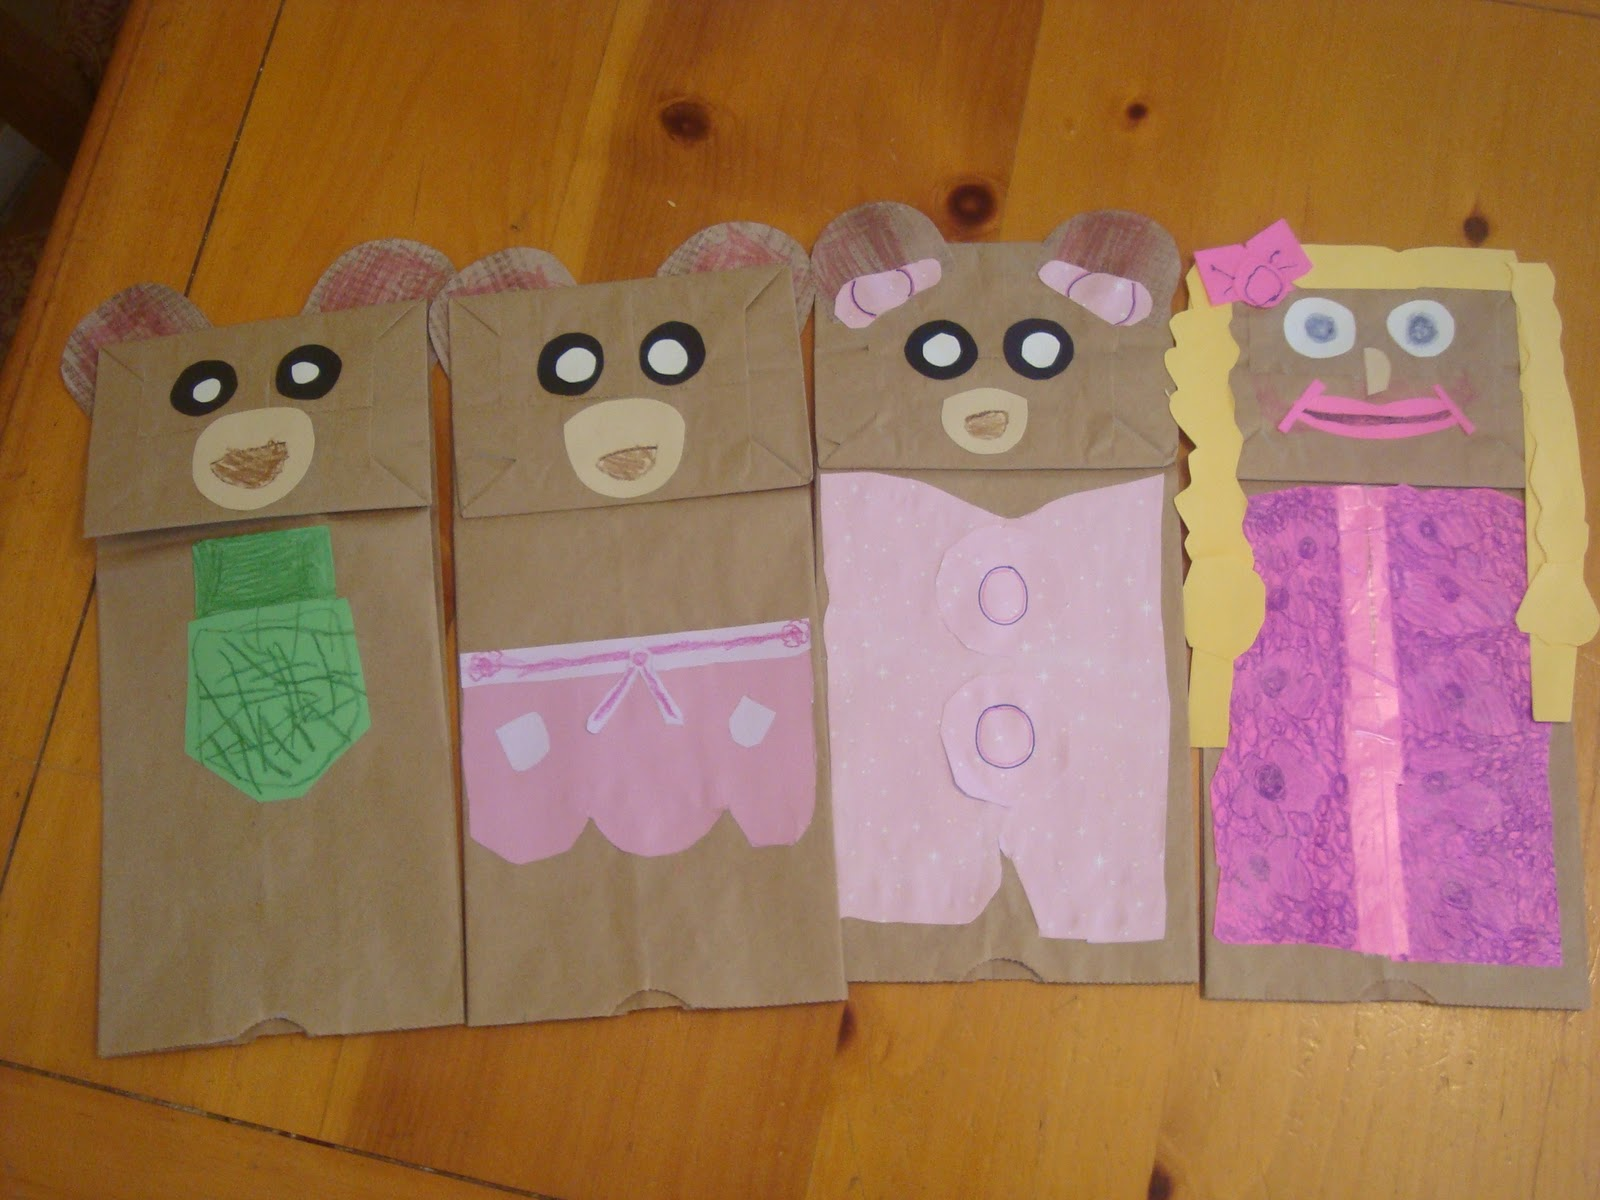 Paper bag activity - Another Simple Activity For Rainy And Cold Days Is Take Brown Lunch Bags And Make Hand Puppets We Took The Bags And Made Our Own Goldilocks And The Three